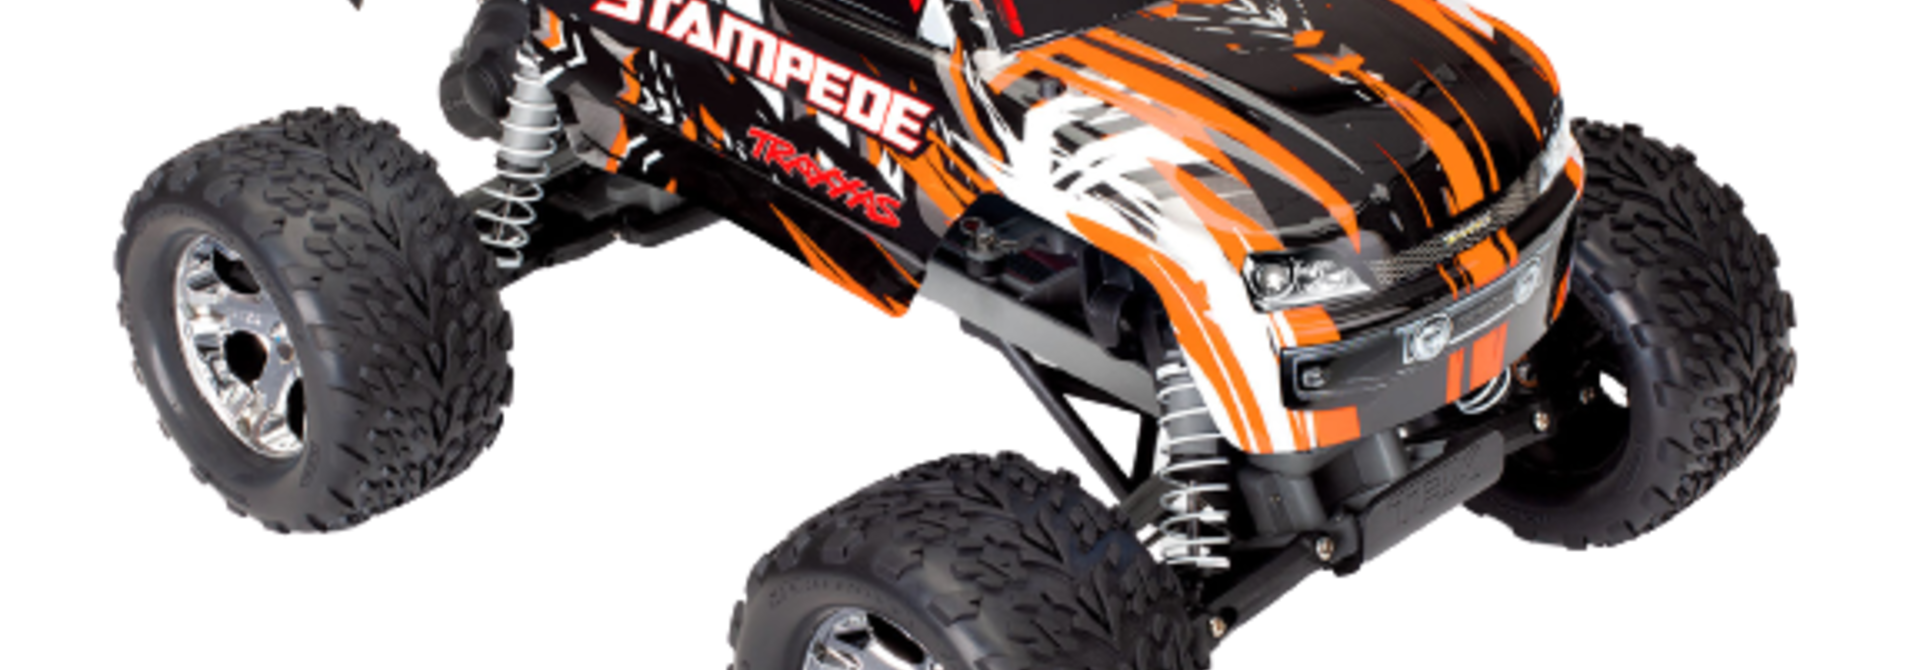 Traxxas Stampede XL-5 TQ (incl battery/charger), Orange TRX36054-1O